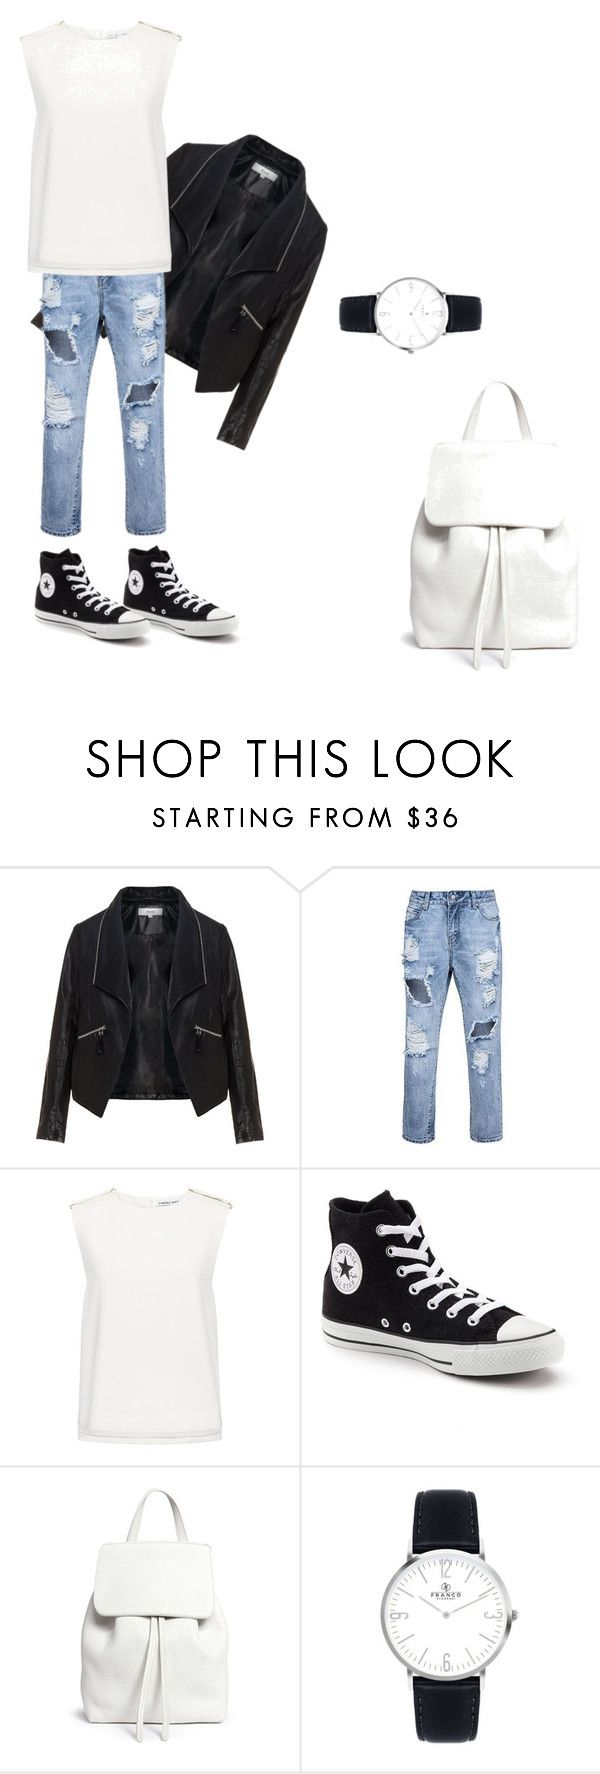 """""""Без названия #1"""" by olazarenko ❤ liked on Polyvore featuring Zizzi, Finders Keepers, Converse and Mansur Gavriel"""